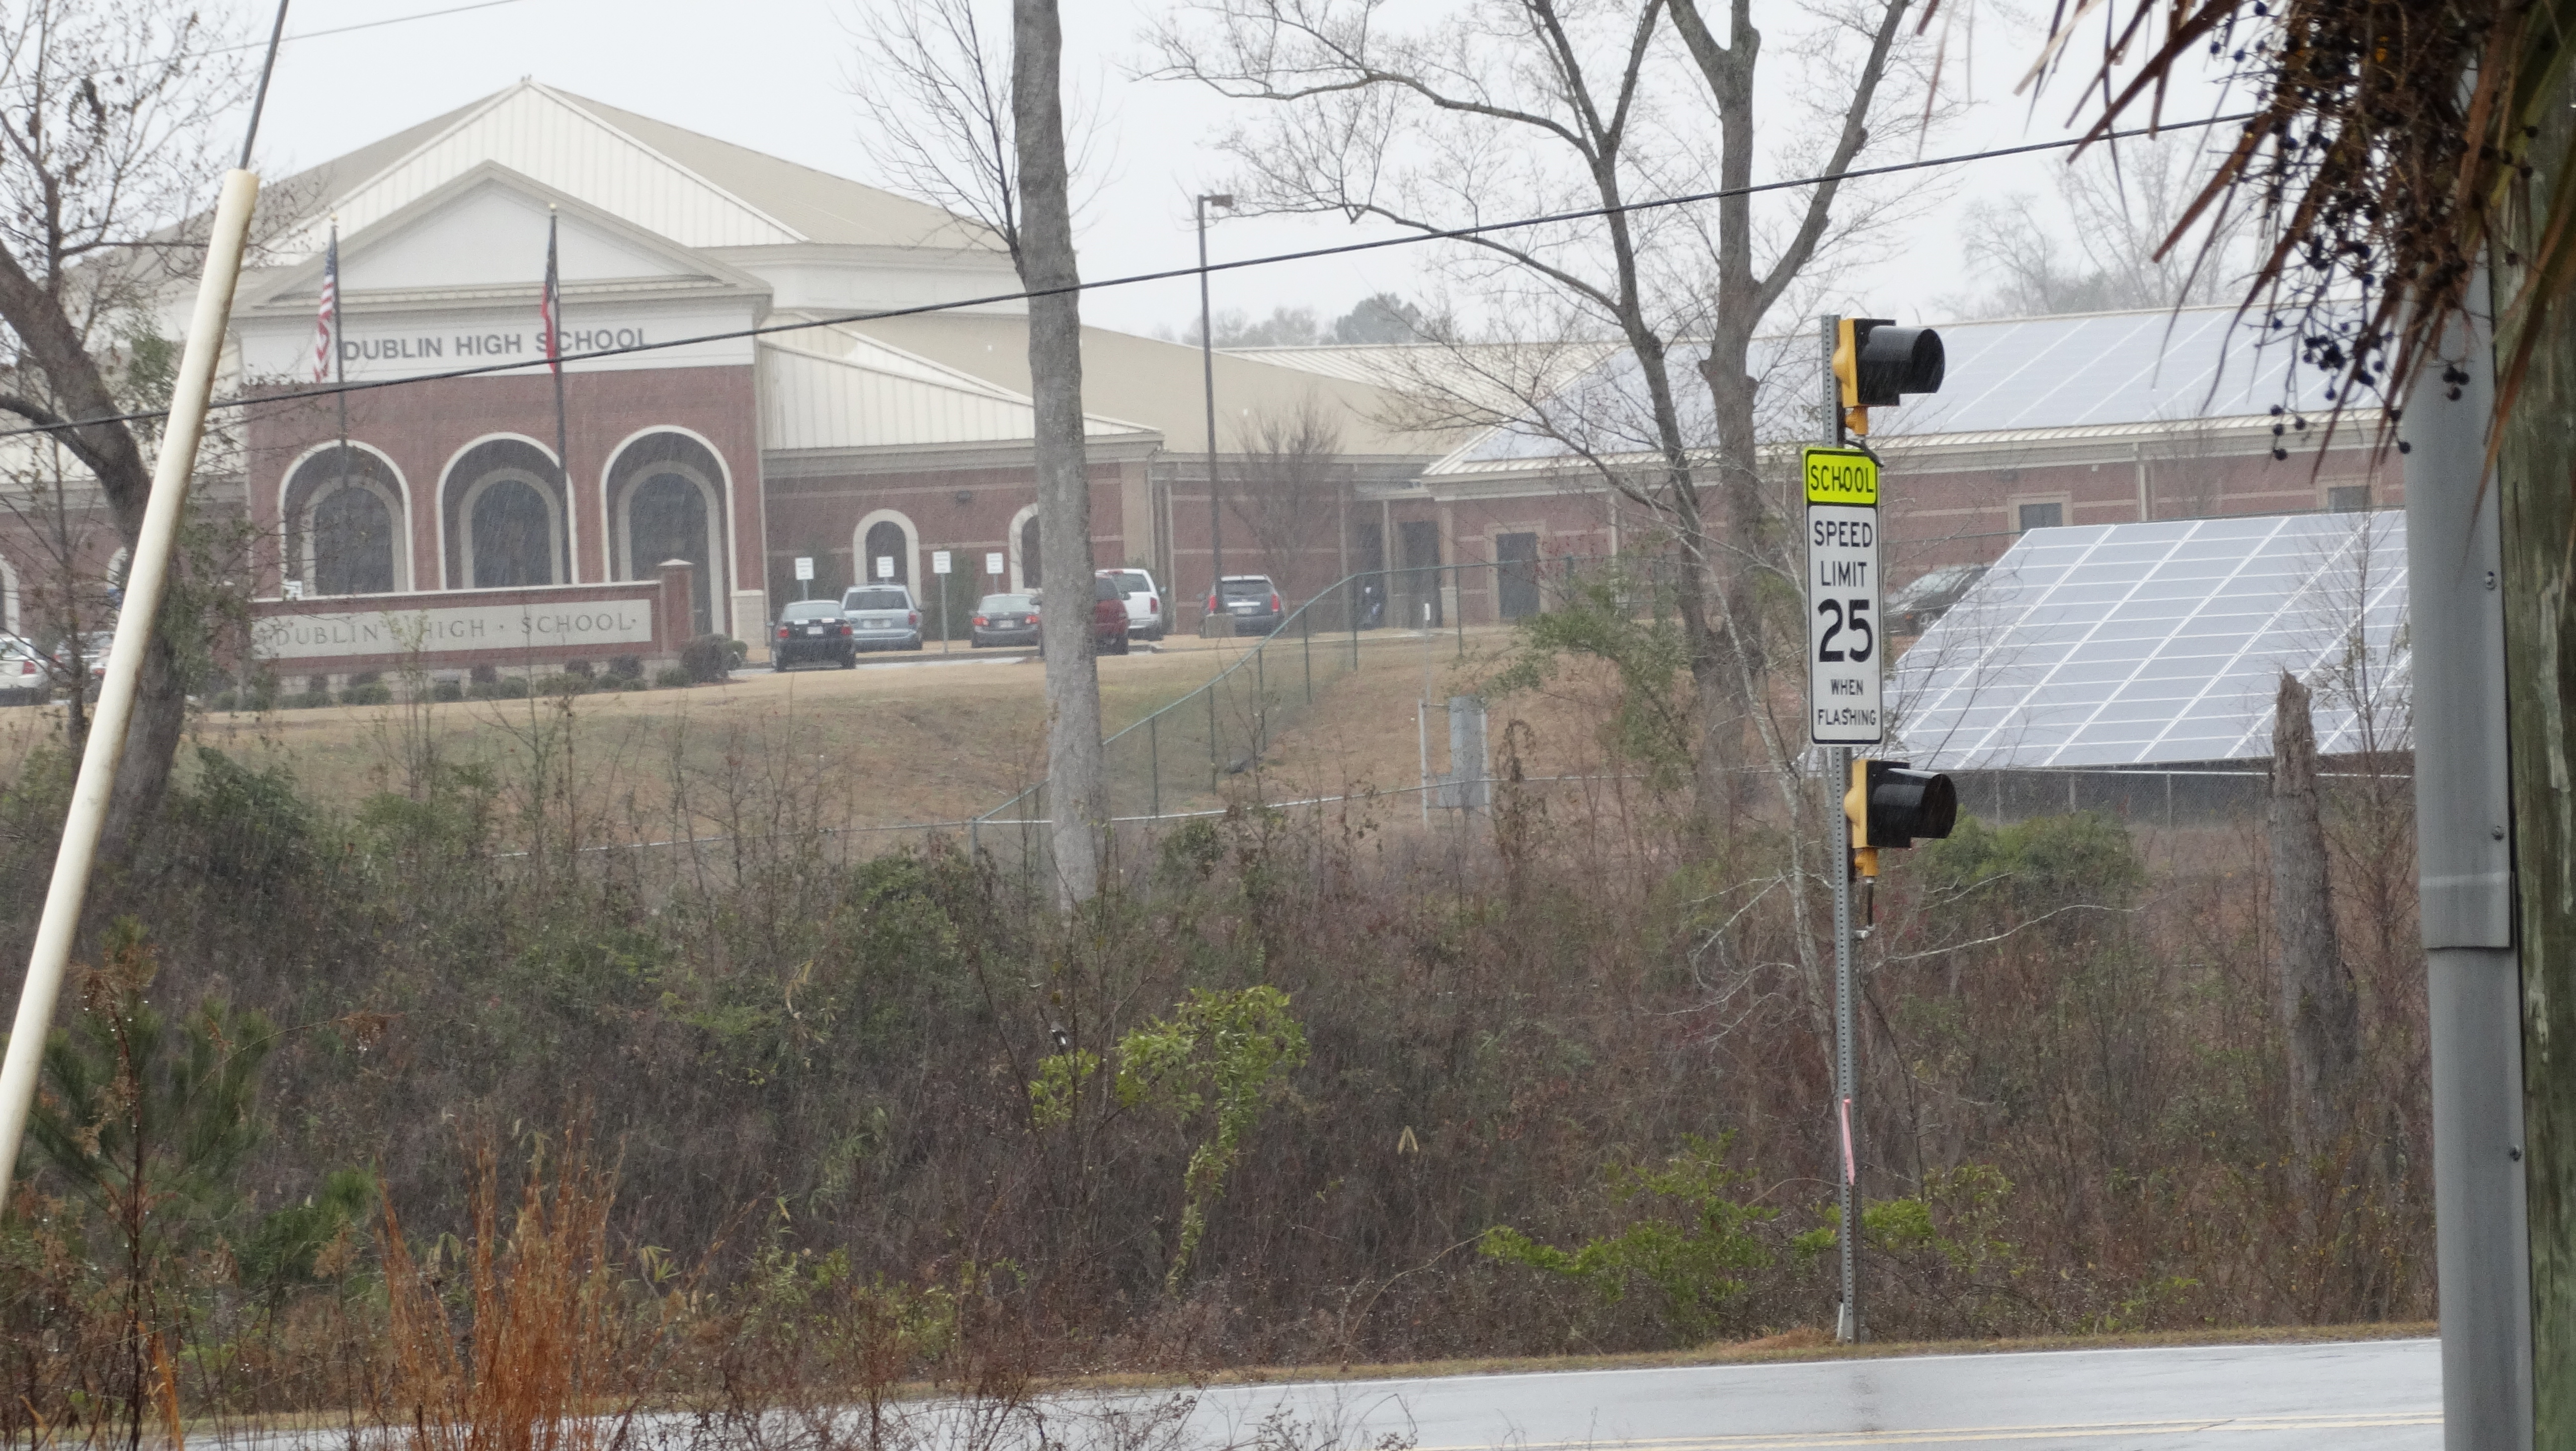 Mage's solar panels, installed in 2013, have pride of place in front of Dublin High School in Laurens County.